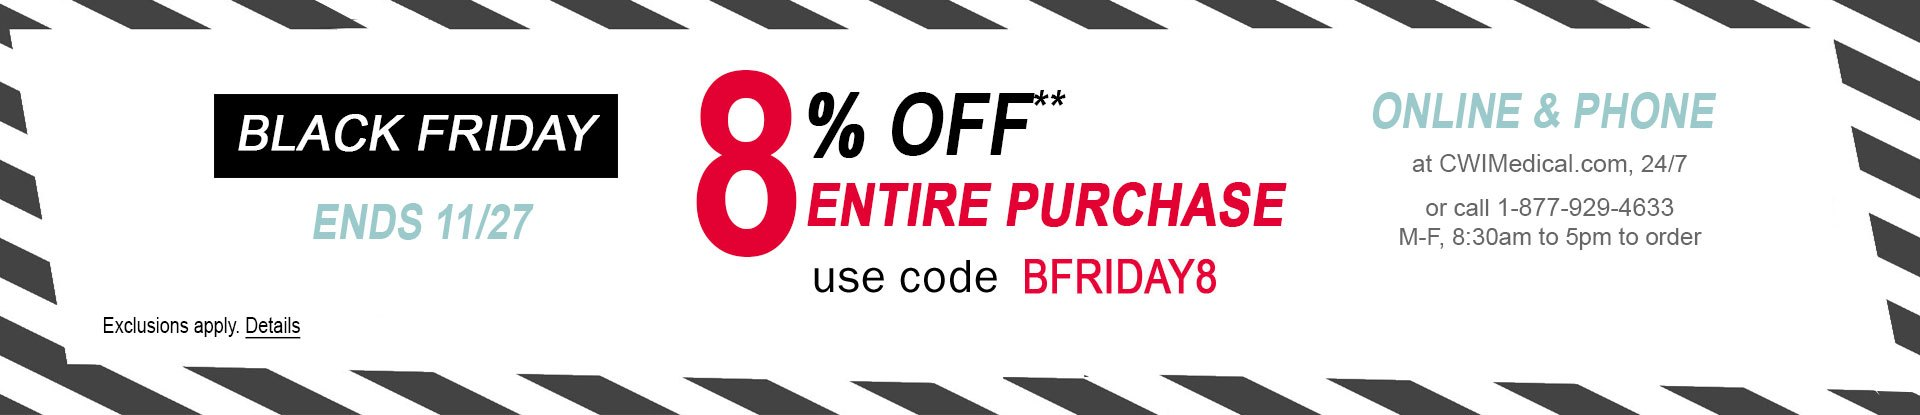 Black Friday Sale | 8% of your purchase with code BFRIDAY8 | Ends 11/27 at 11:59 PM ET